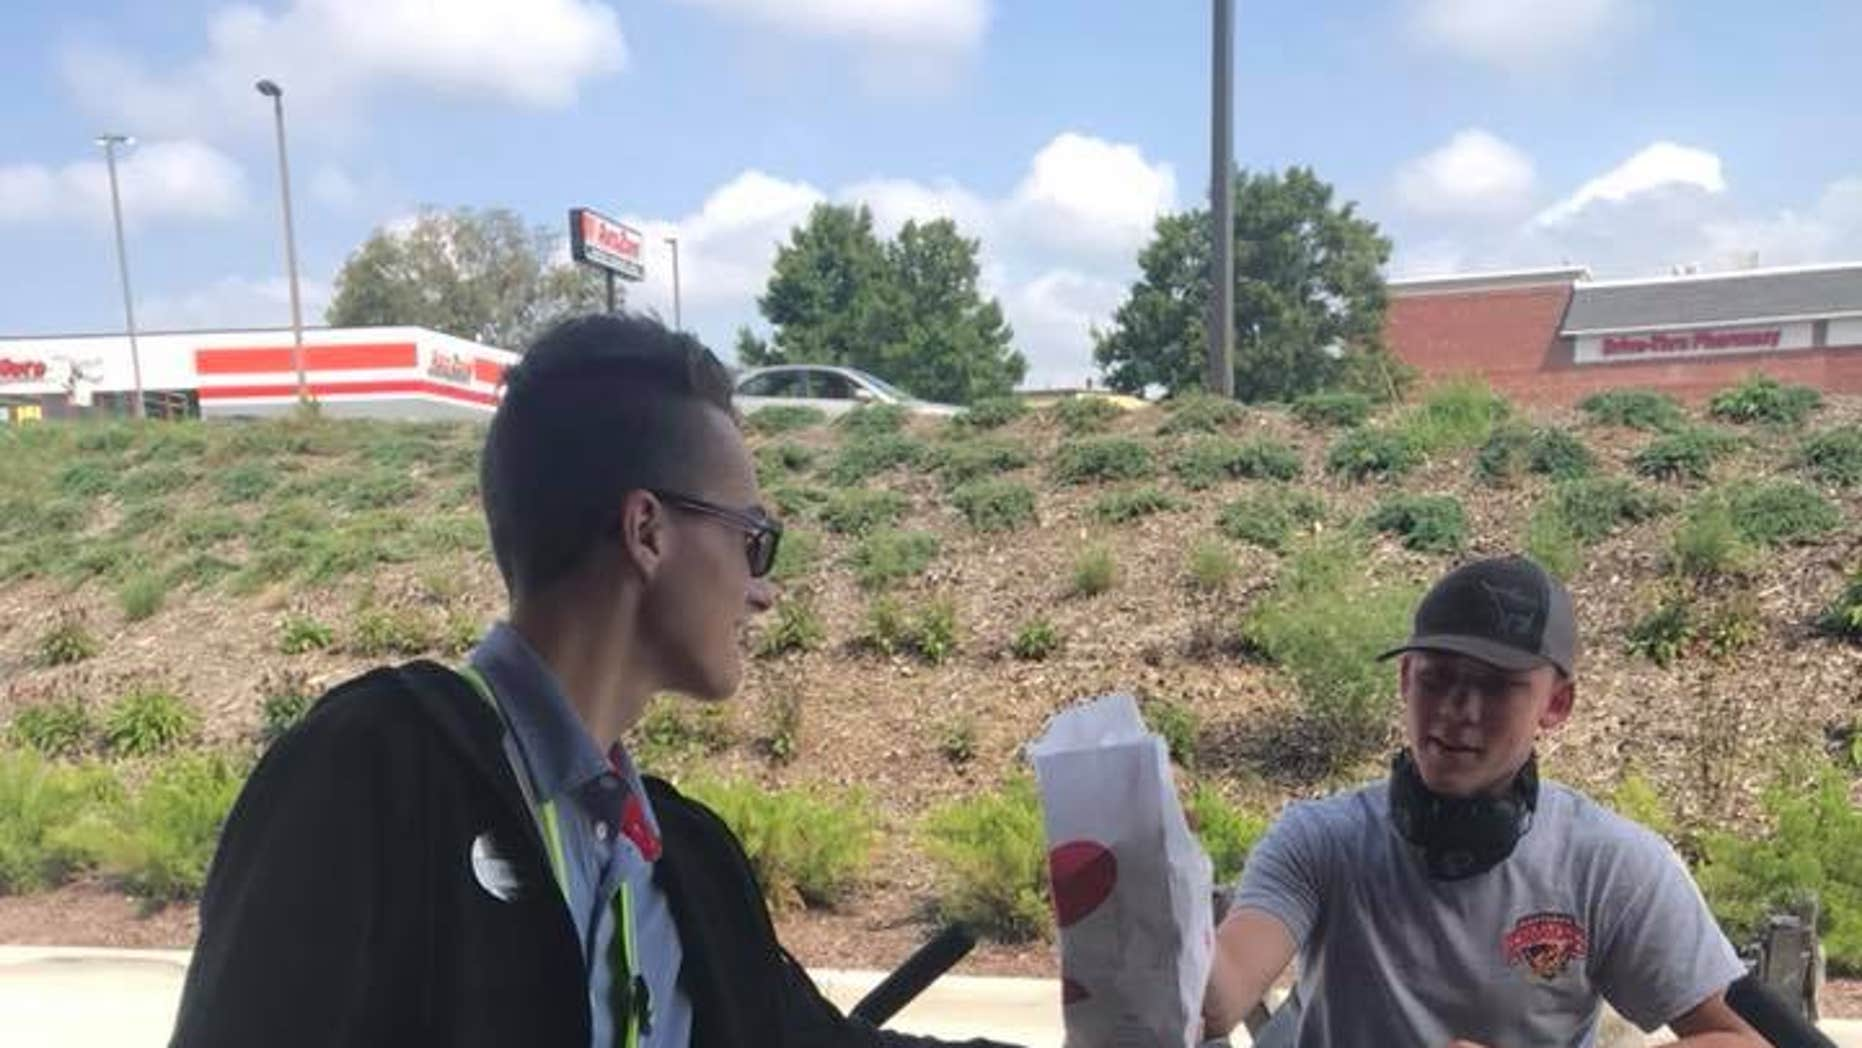 A Chick-fil-A restaurant in Maryland beefed up its customer service when a patron came through the drive-thru on a riding lawn mower.